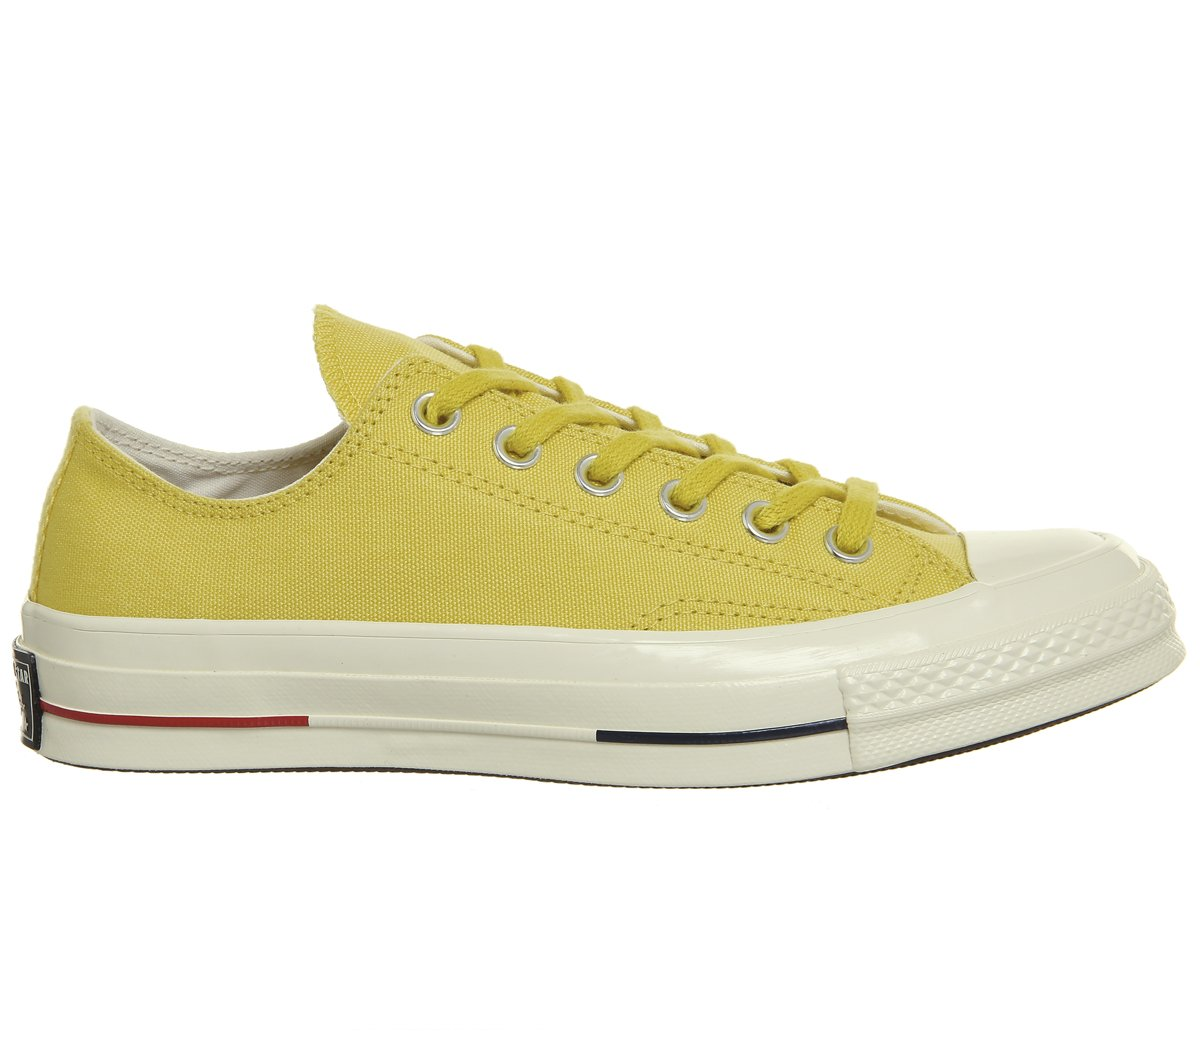 Converse AS Hi Can charcoal 1J793 Unisex-Erwachsene Sneaker  36.5 EU|Desert Gold Navy Gym Red